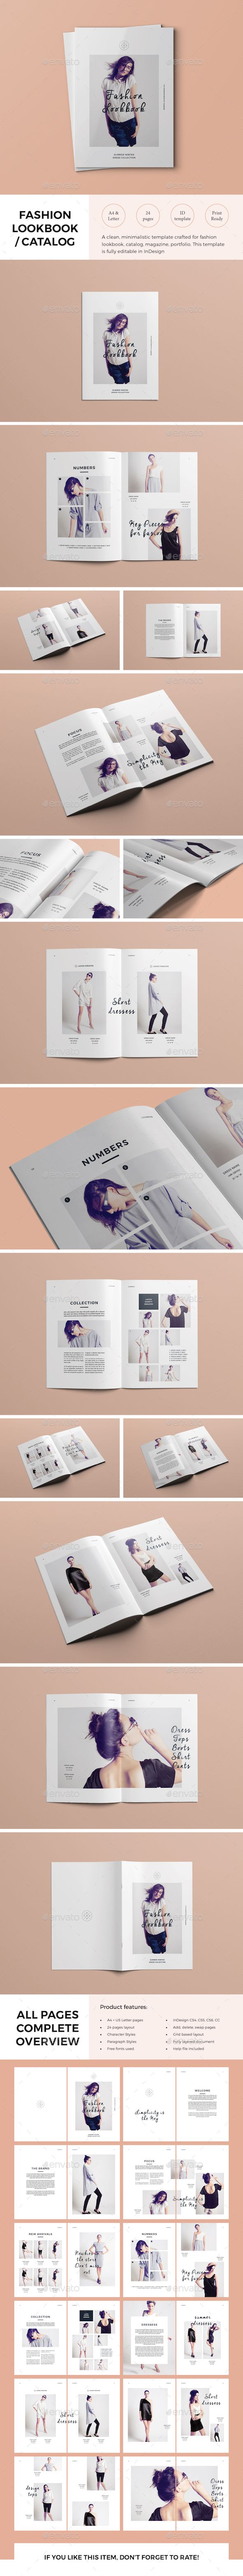 Fashion Lookbook / Catalog Template                              …